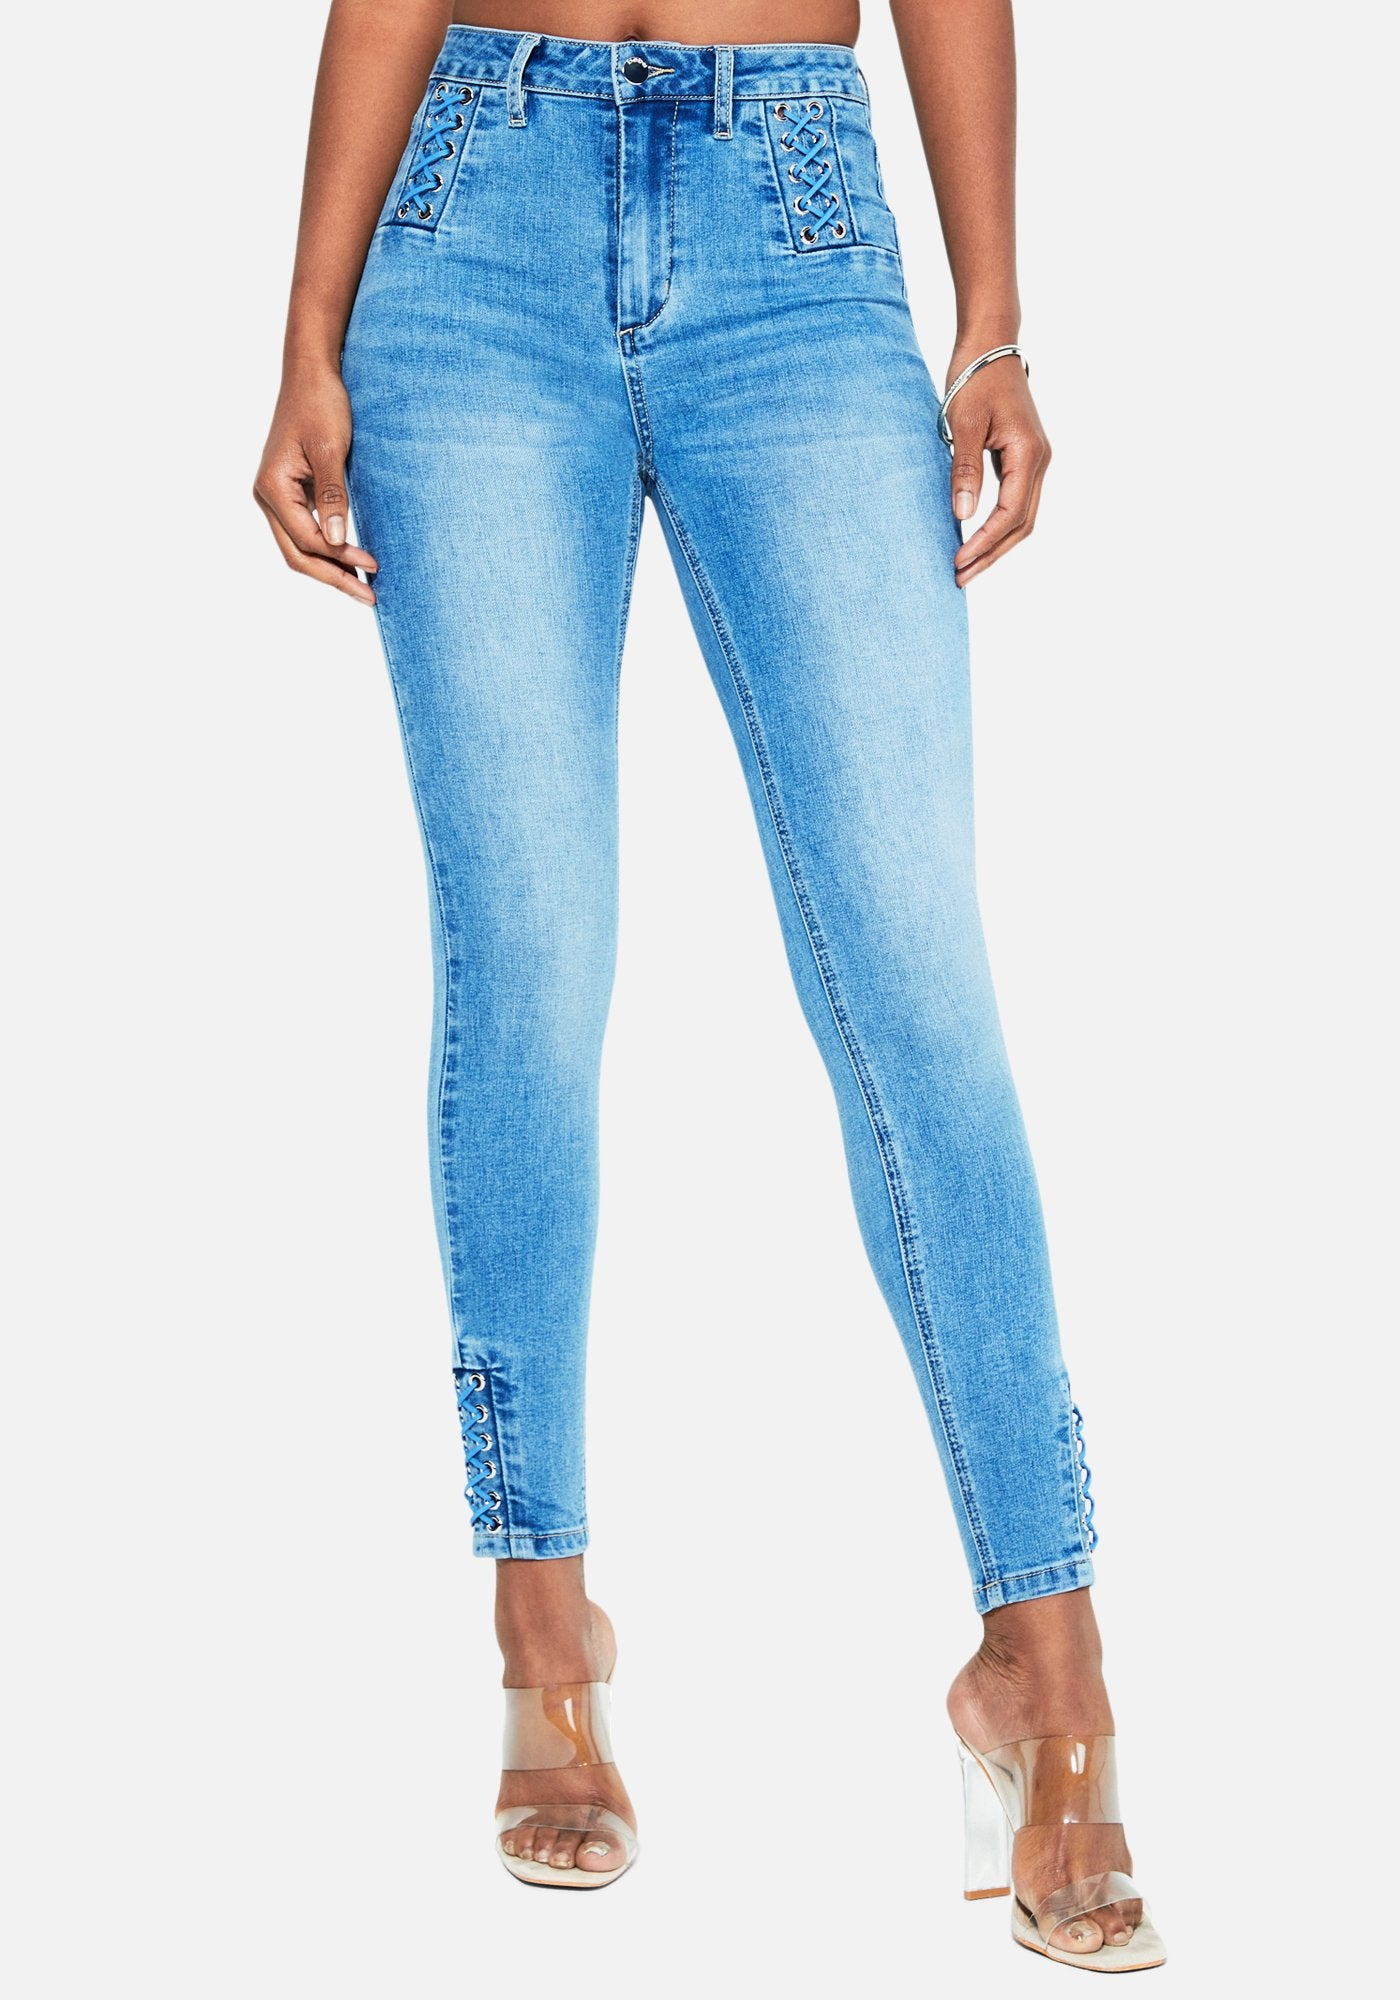 Bebe Women's Lace Detail Skinny Jeans, Size 25 in LIGHT BLUE WASH Cotton/Spandex